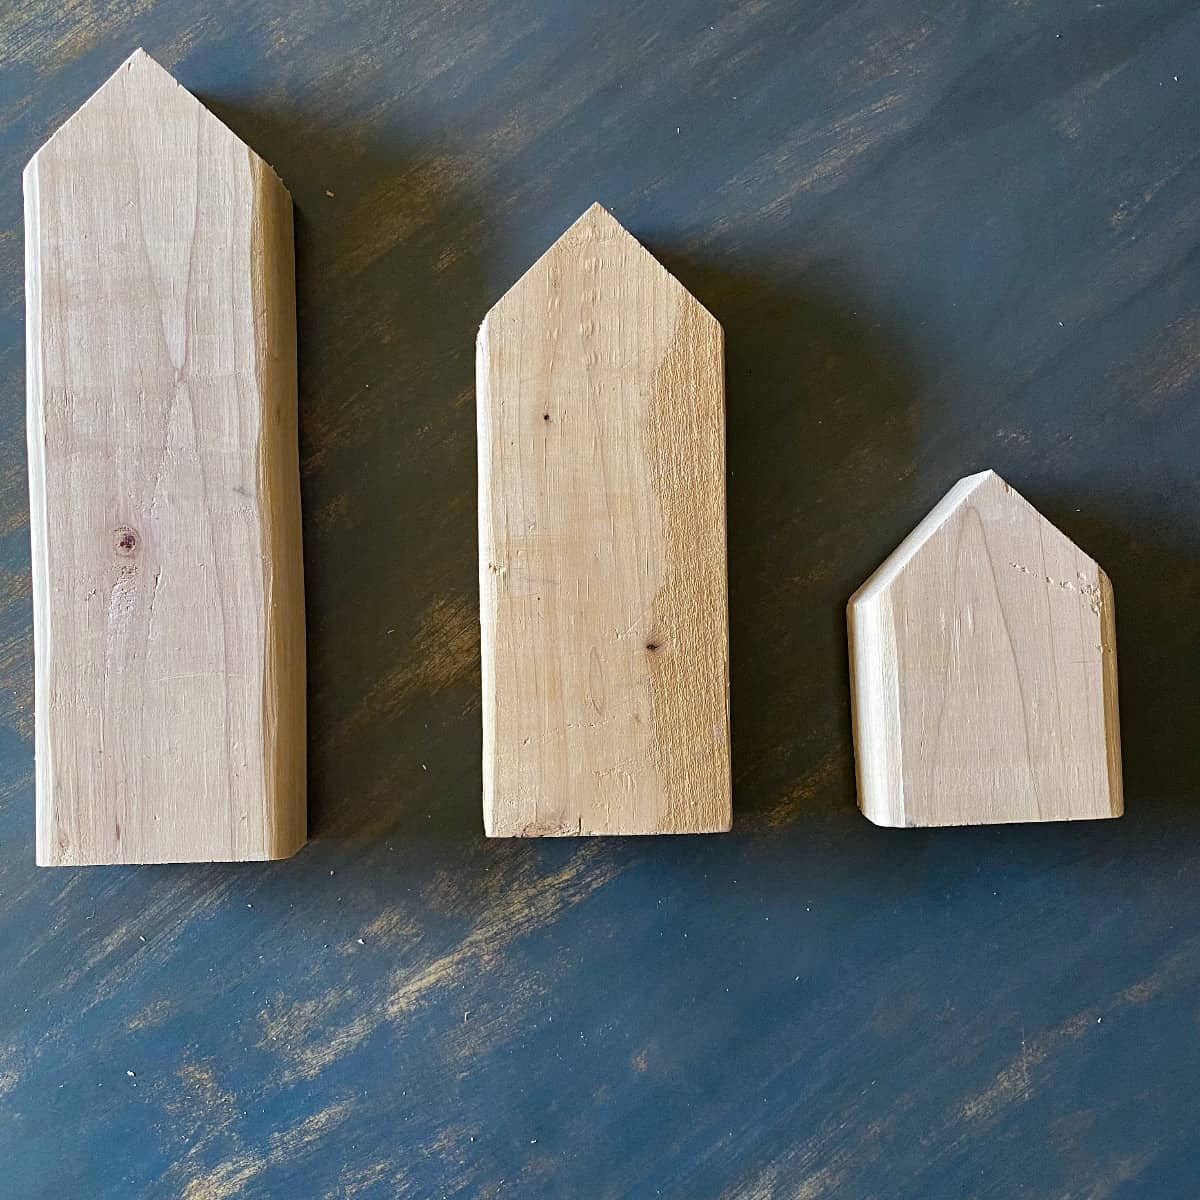 angles cut on 2x4 wood boards in preparation for making halloween black cat wood block decor